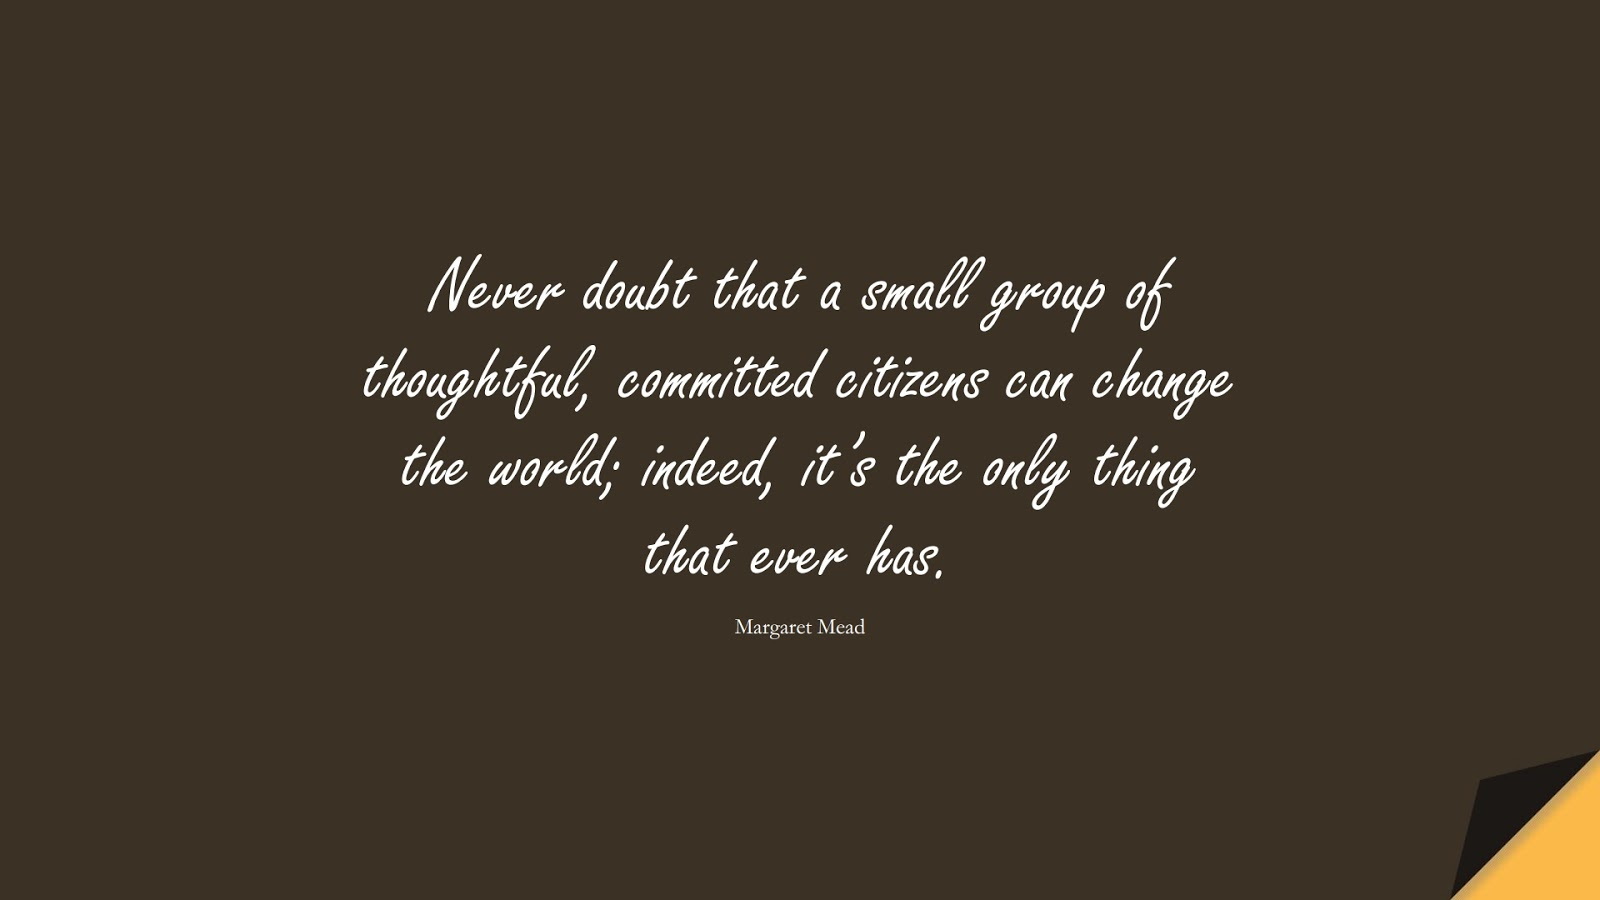 Never doubt that a small group of thoughtful, committed citizens can change the world; indeed, it's the only thing that ever has. (Margaret Mead);  #HumanityQuotes